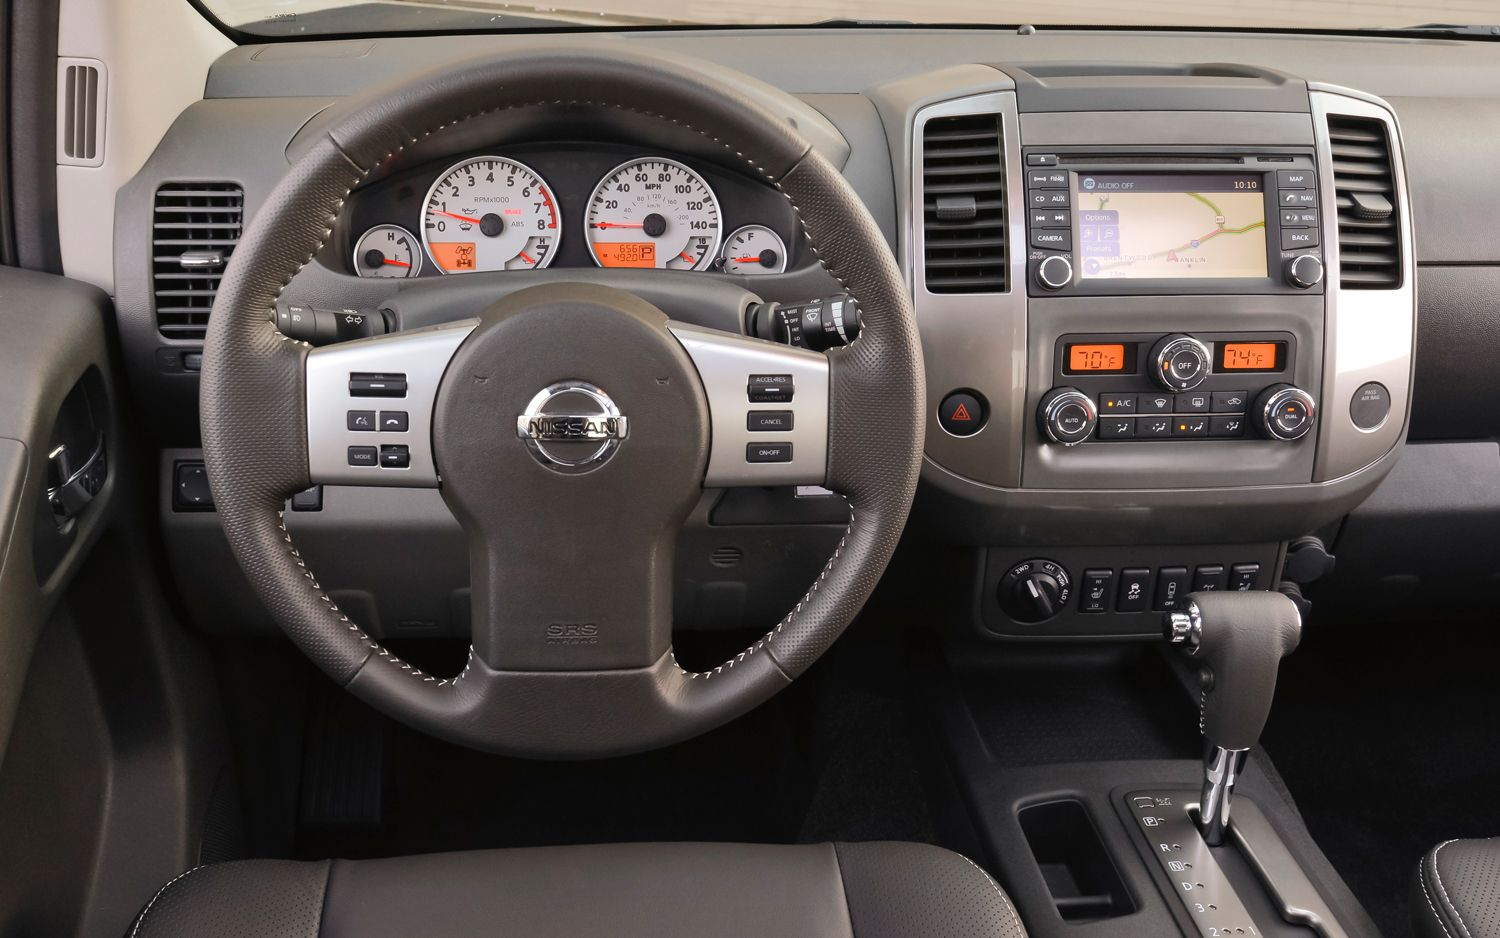 Cool 2014 nissan frontier king cab interior car images hd nissan cool 2014 nissan frontier king cab interior car images hd nissan frontier interior nissan frontier crew vanachro Choice Image